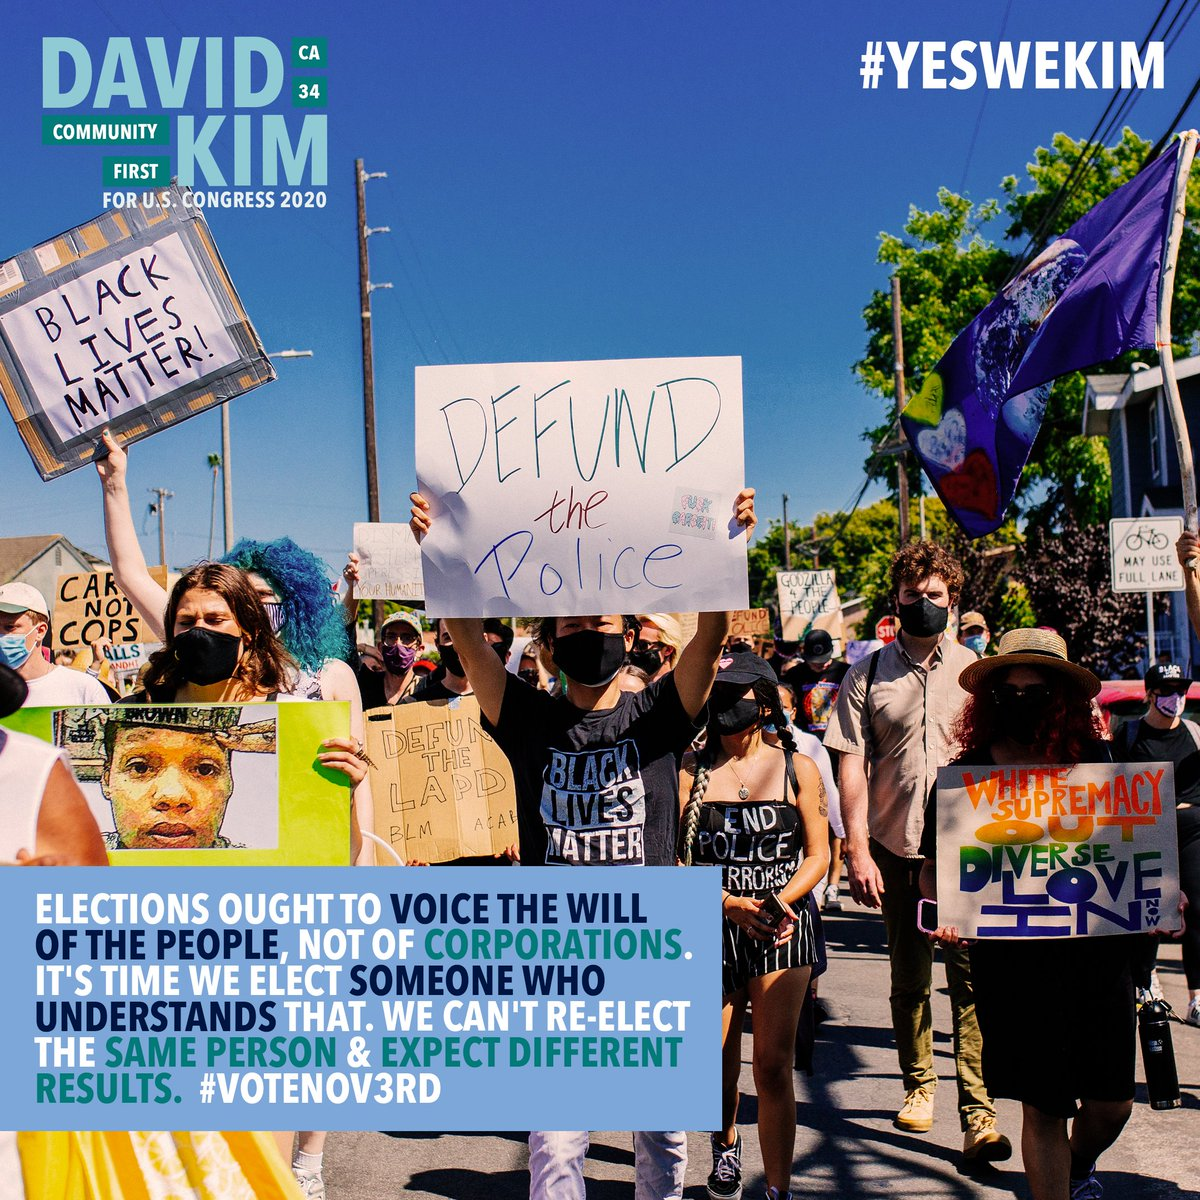 Elections ought to voice the will of the people, not of corporations. It's time we elect someone who understands that. We can't re-elect the same person & expect different results. #VoteNov3rd.  - David Kim, Funded By The People #CommunityFirst #YesWeKim #CA34 #LosAngeles #BLM